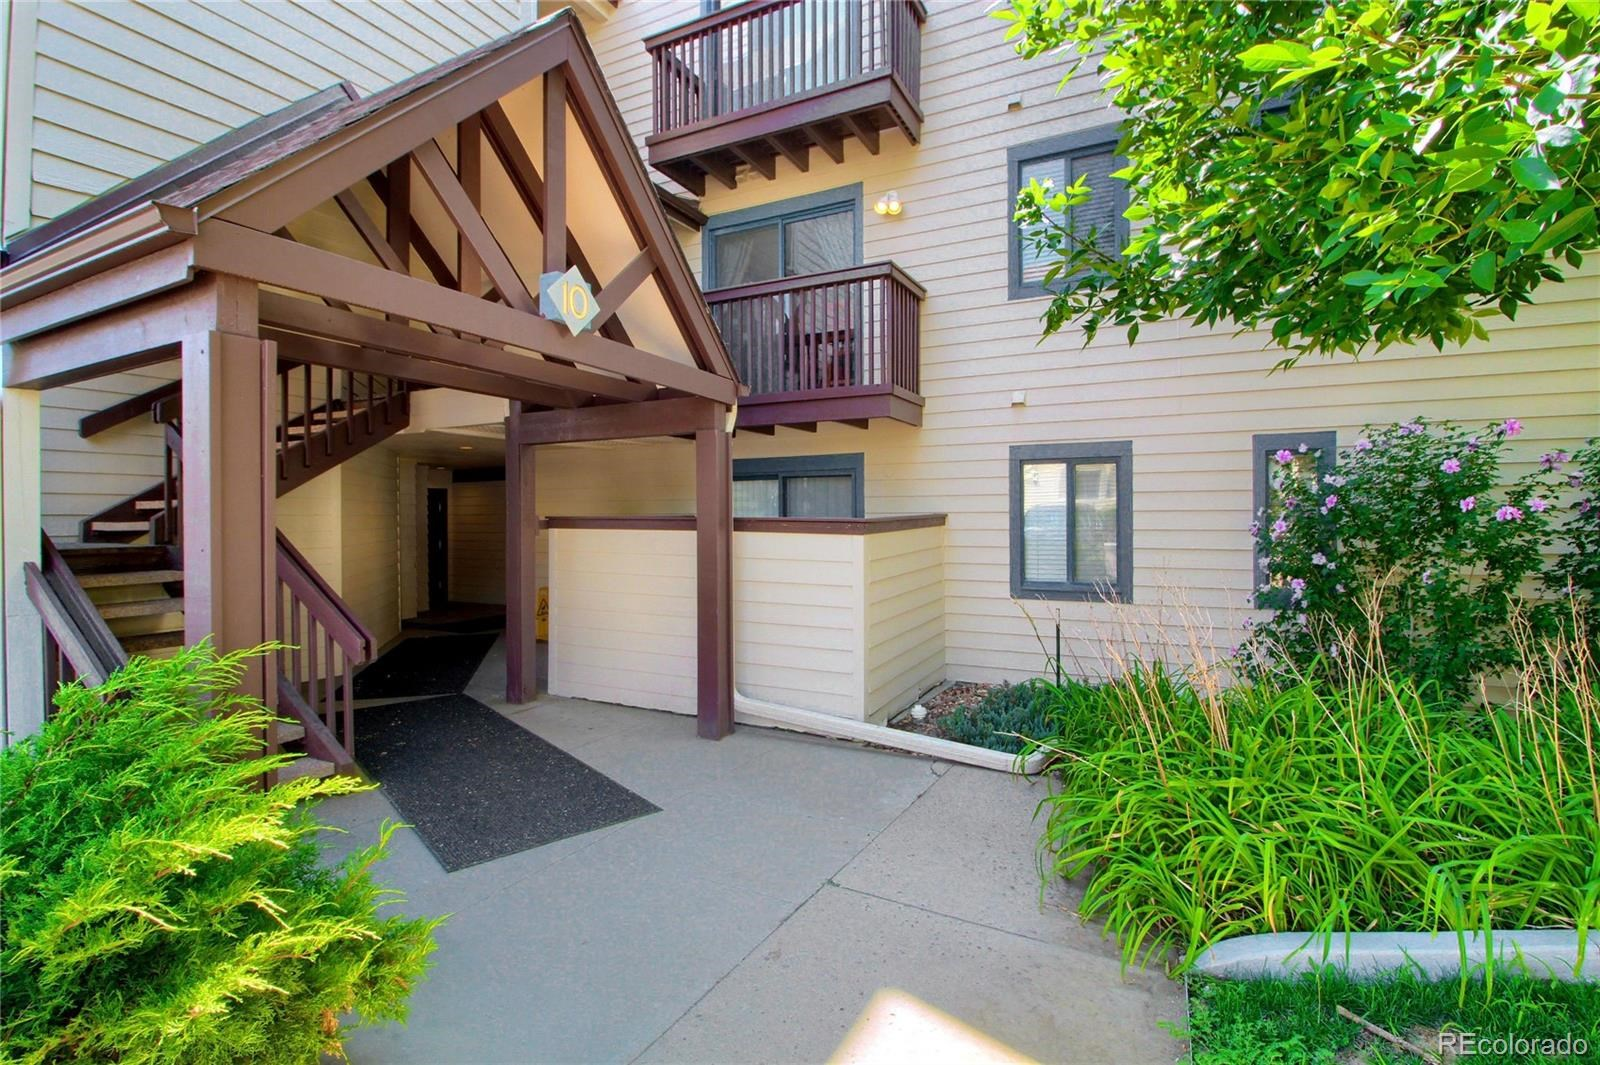 MLS# 5763768 - 3 - 6380 S Boston Street #303, Greenwood Village, CO 80111